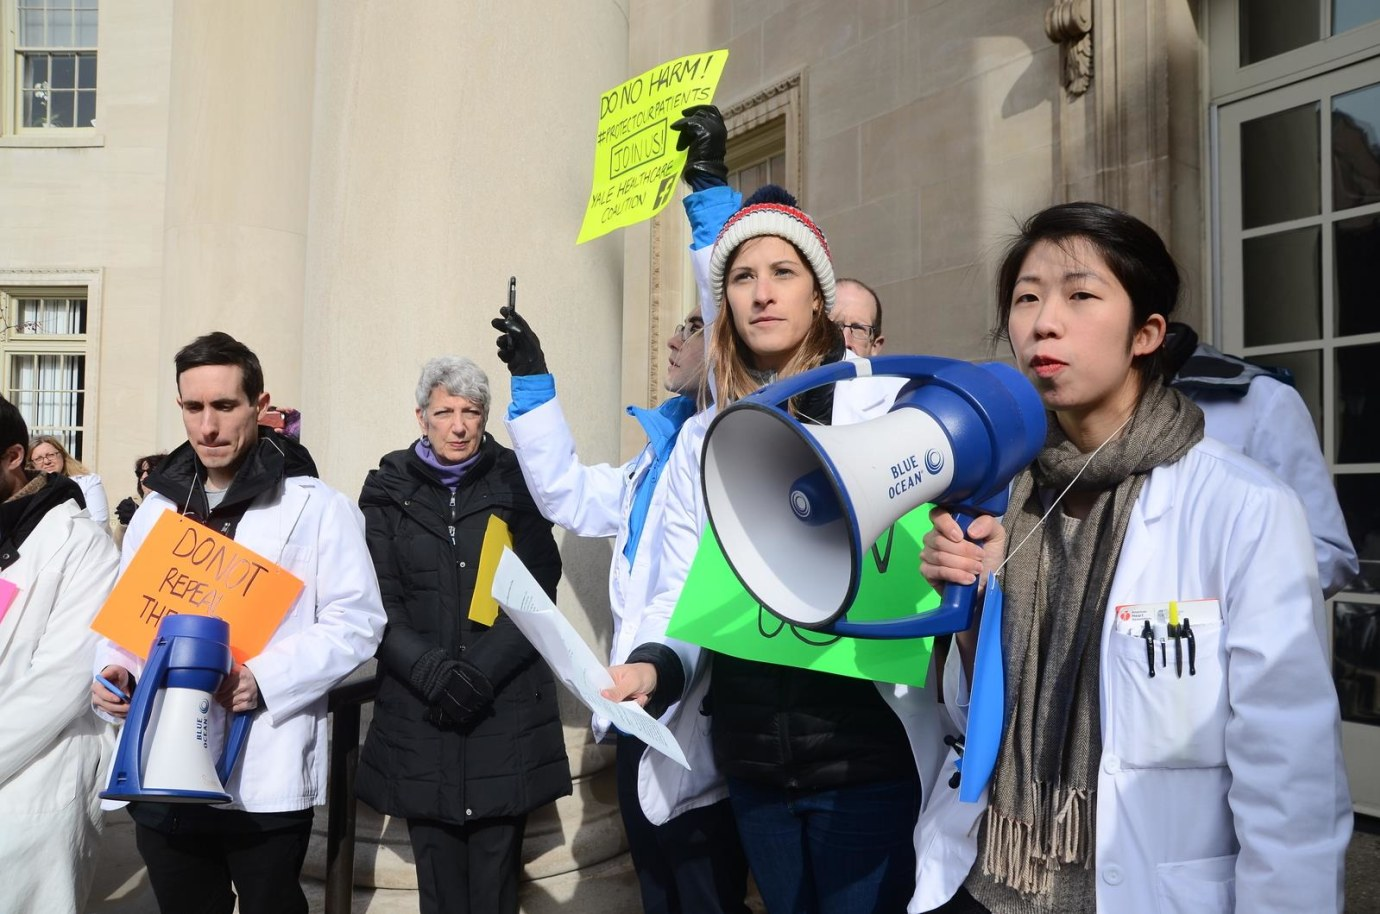 Priscilla Wang addressed a crowd of students and faculty on January 30, a national Day of Action to support the Affordable Care Act.